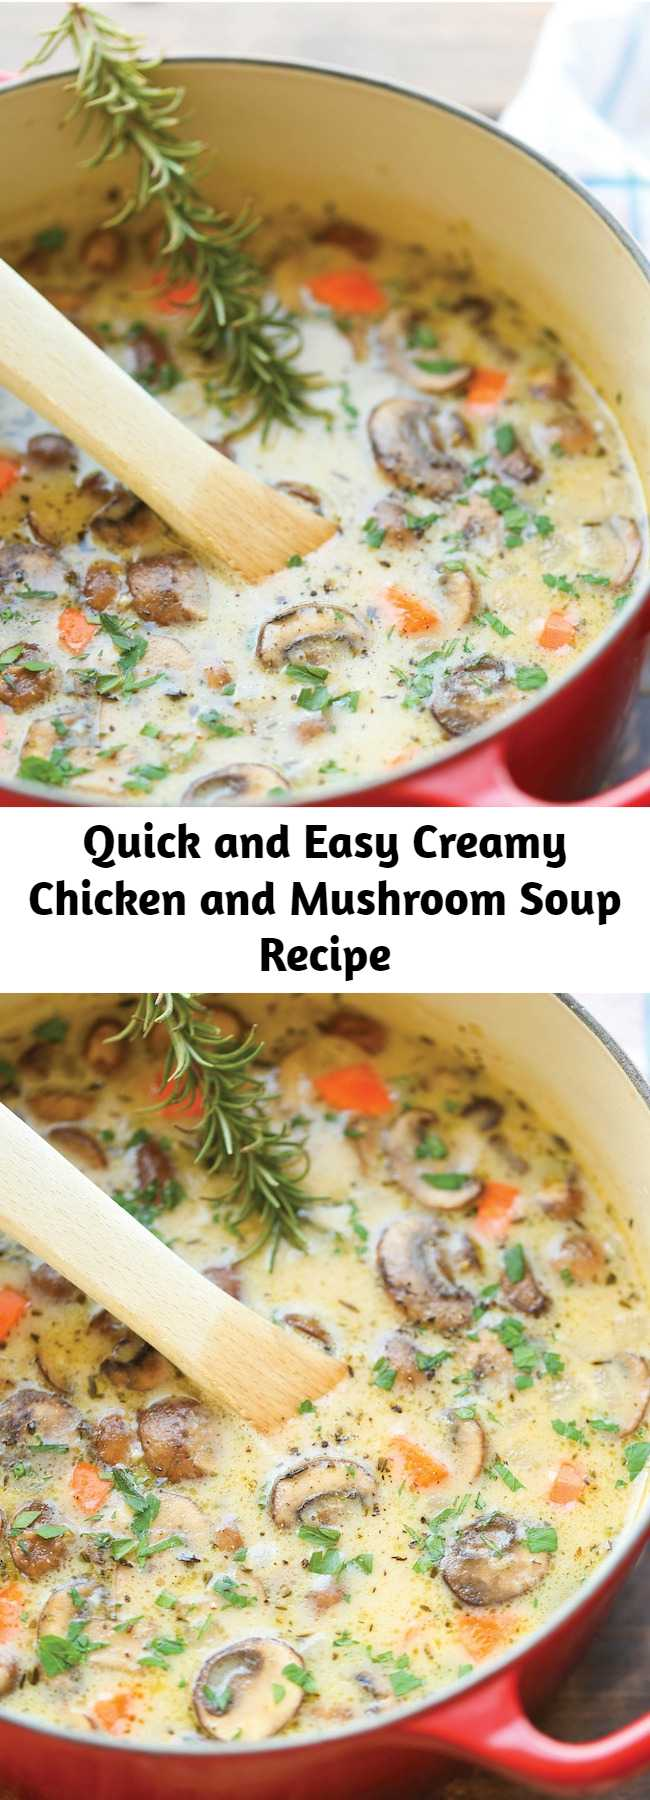 Quick and Easy Creamy Chicken and Mushroom Soup Recipe - So cozy, so comforting and just so creamy. Best of all, this is made in 30 min from start to finish – so quick and easy!